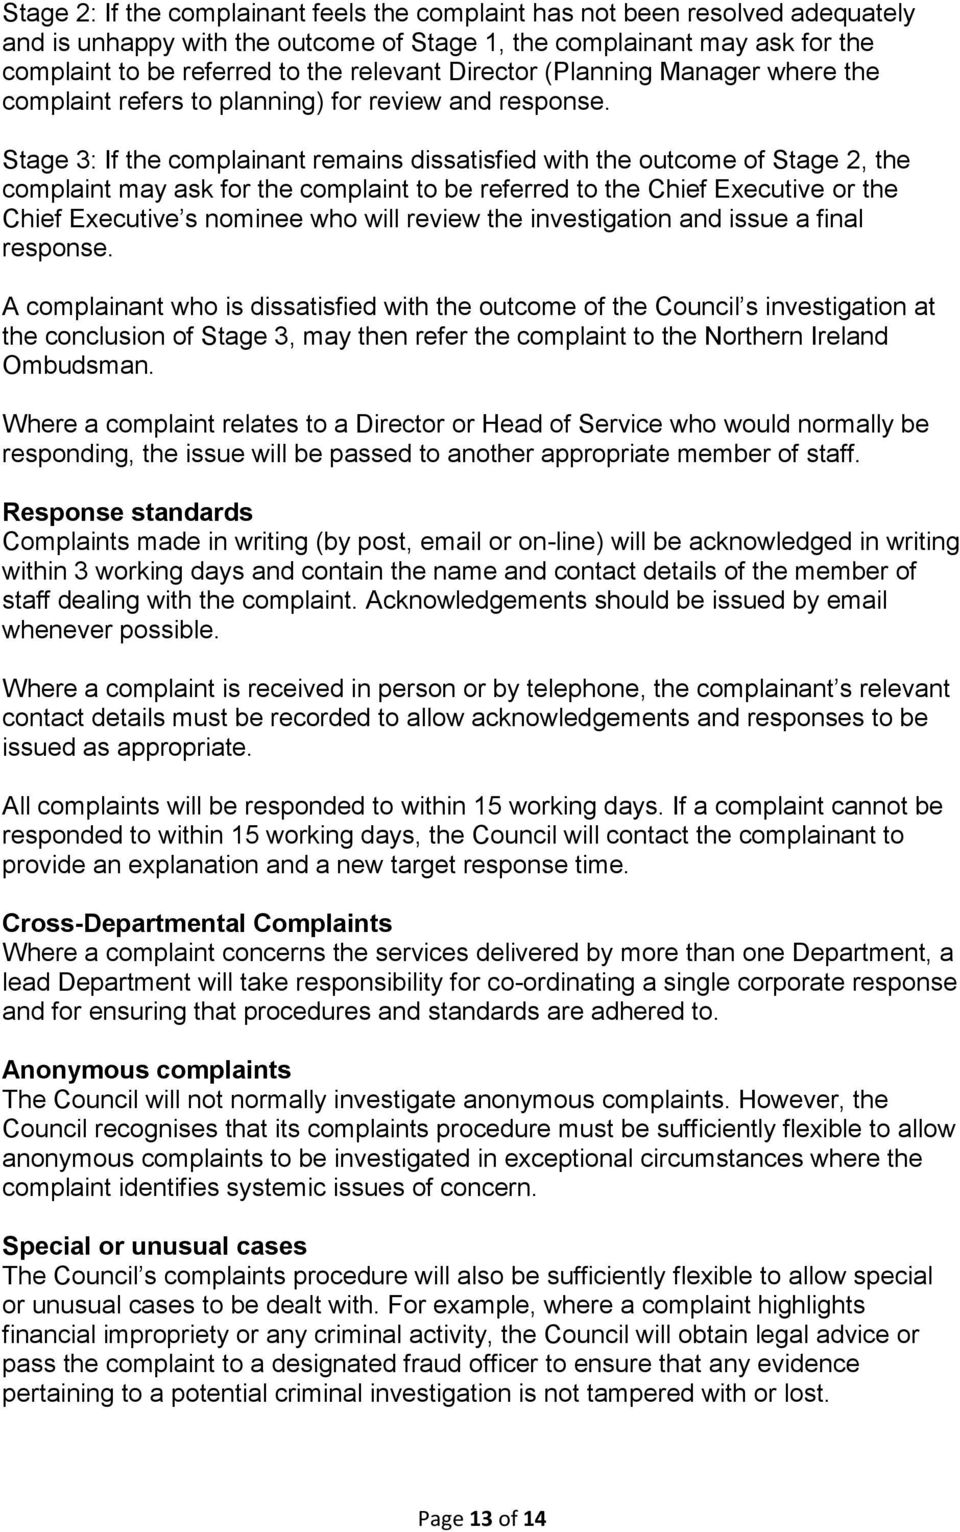 Stage 3: If the complainant remains dissatisfied with the outcome of Stage 2, the complaint may ask for the complaint to be referred to the Chief Executive or the Chief Executive s nominee who will